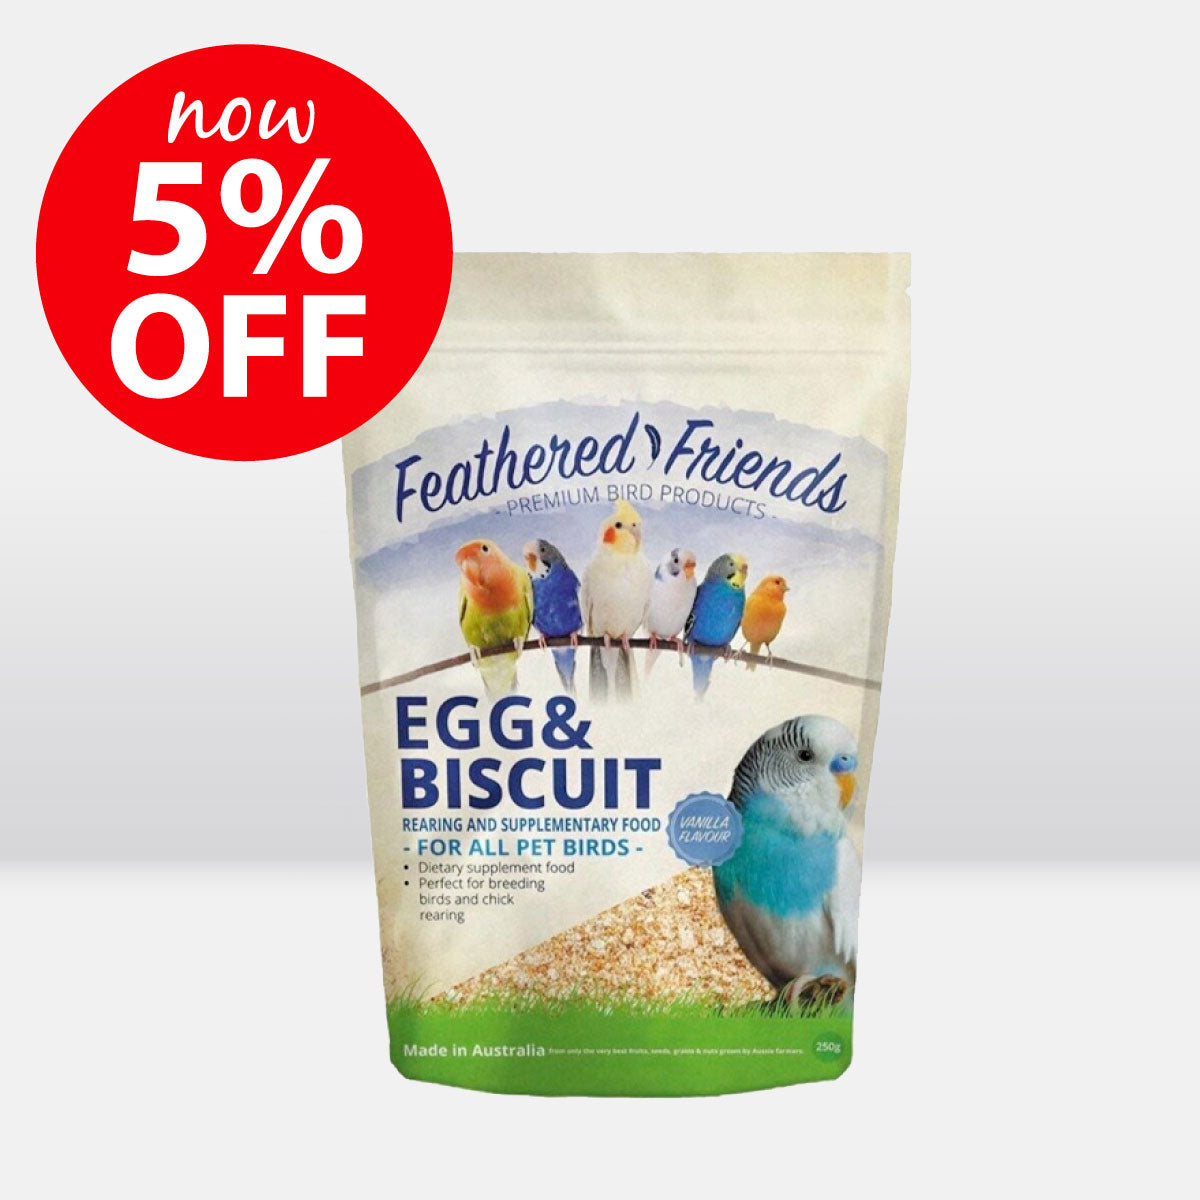 Feathered Friends Egg & Biscuit Rearing & Supplementary Food ON SALE